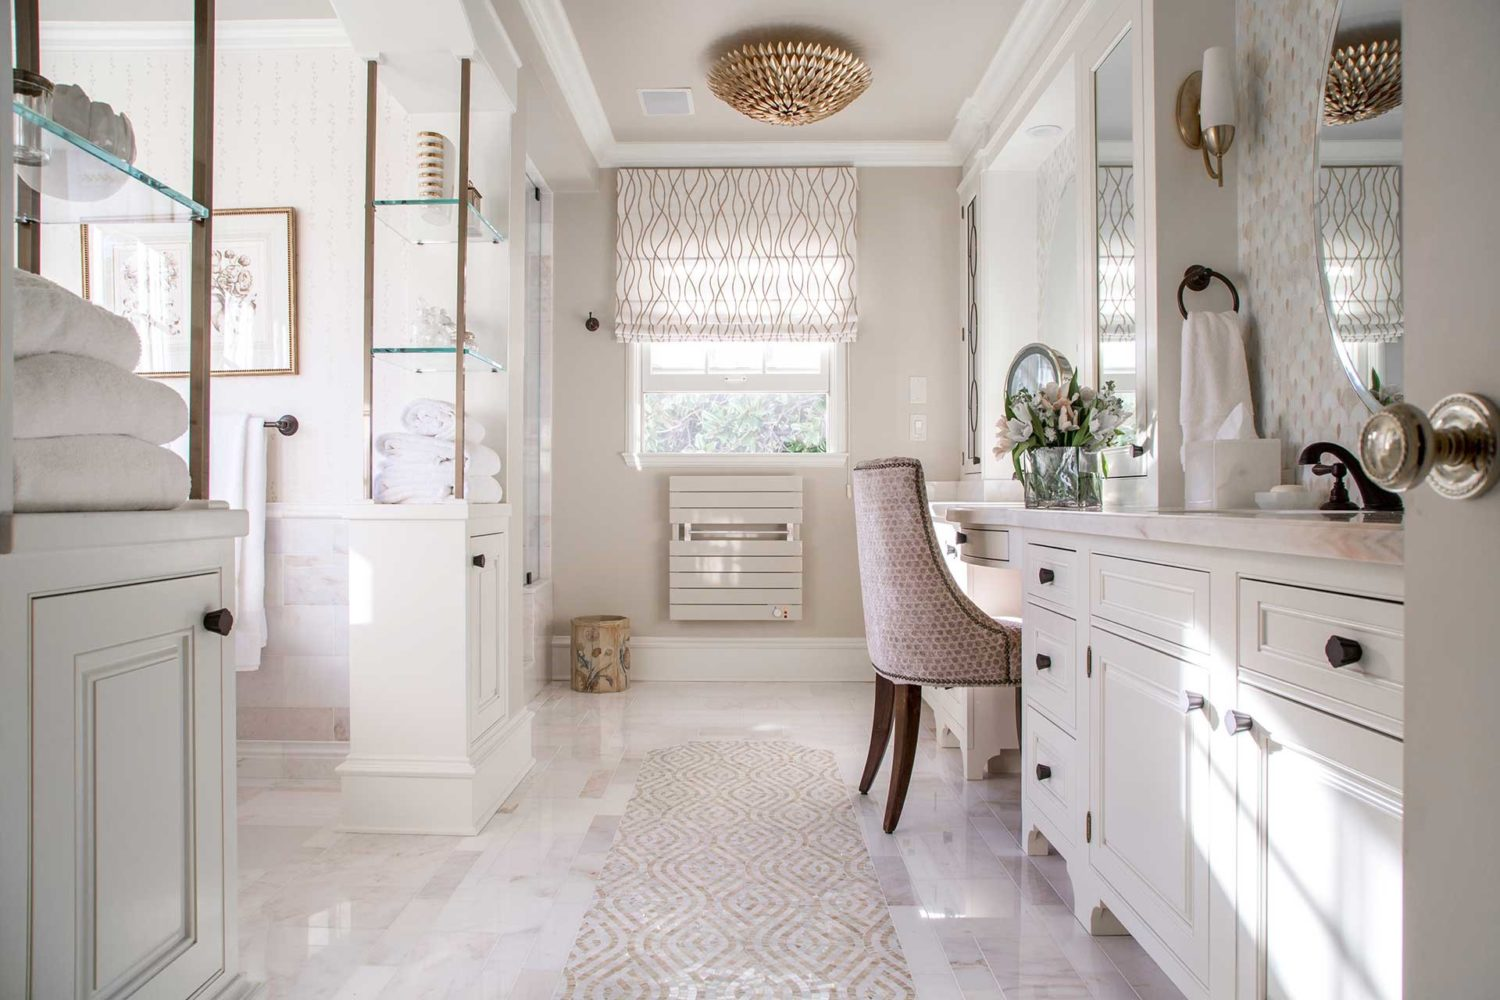 Bright and white bathroom